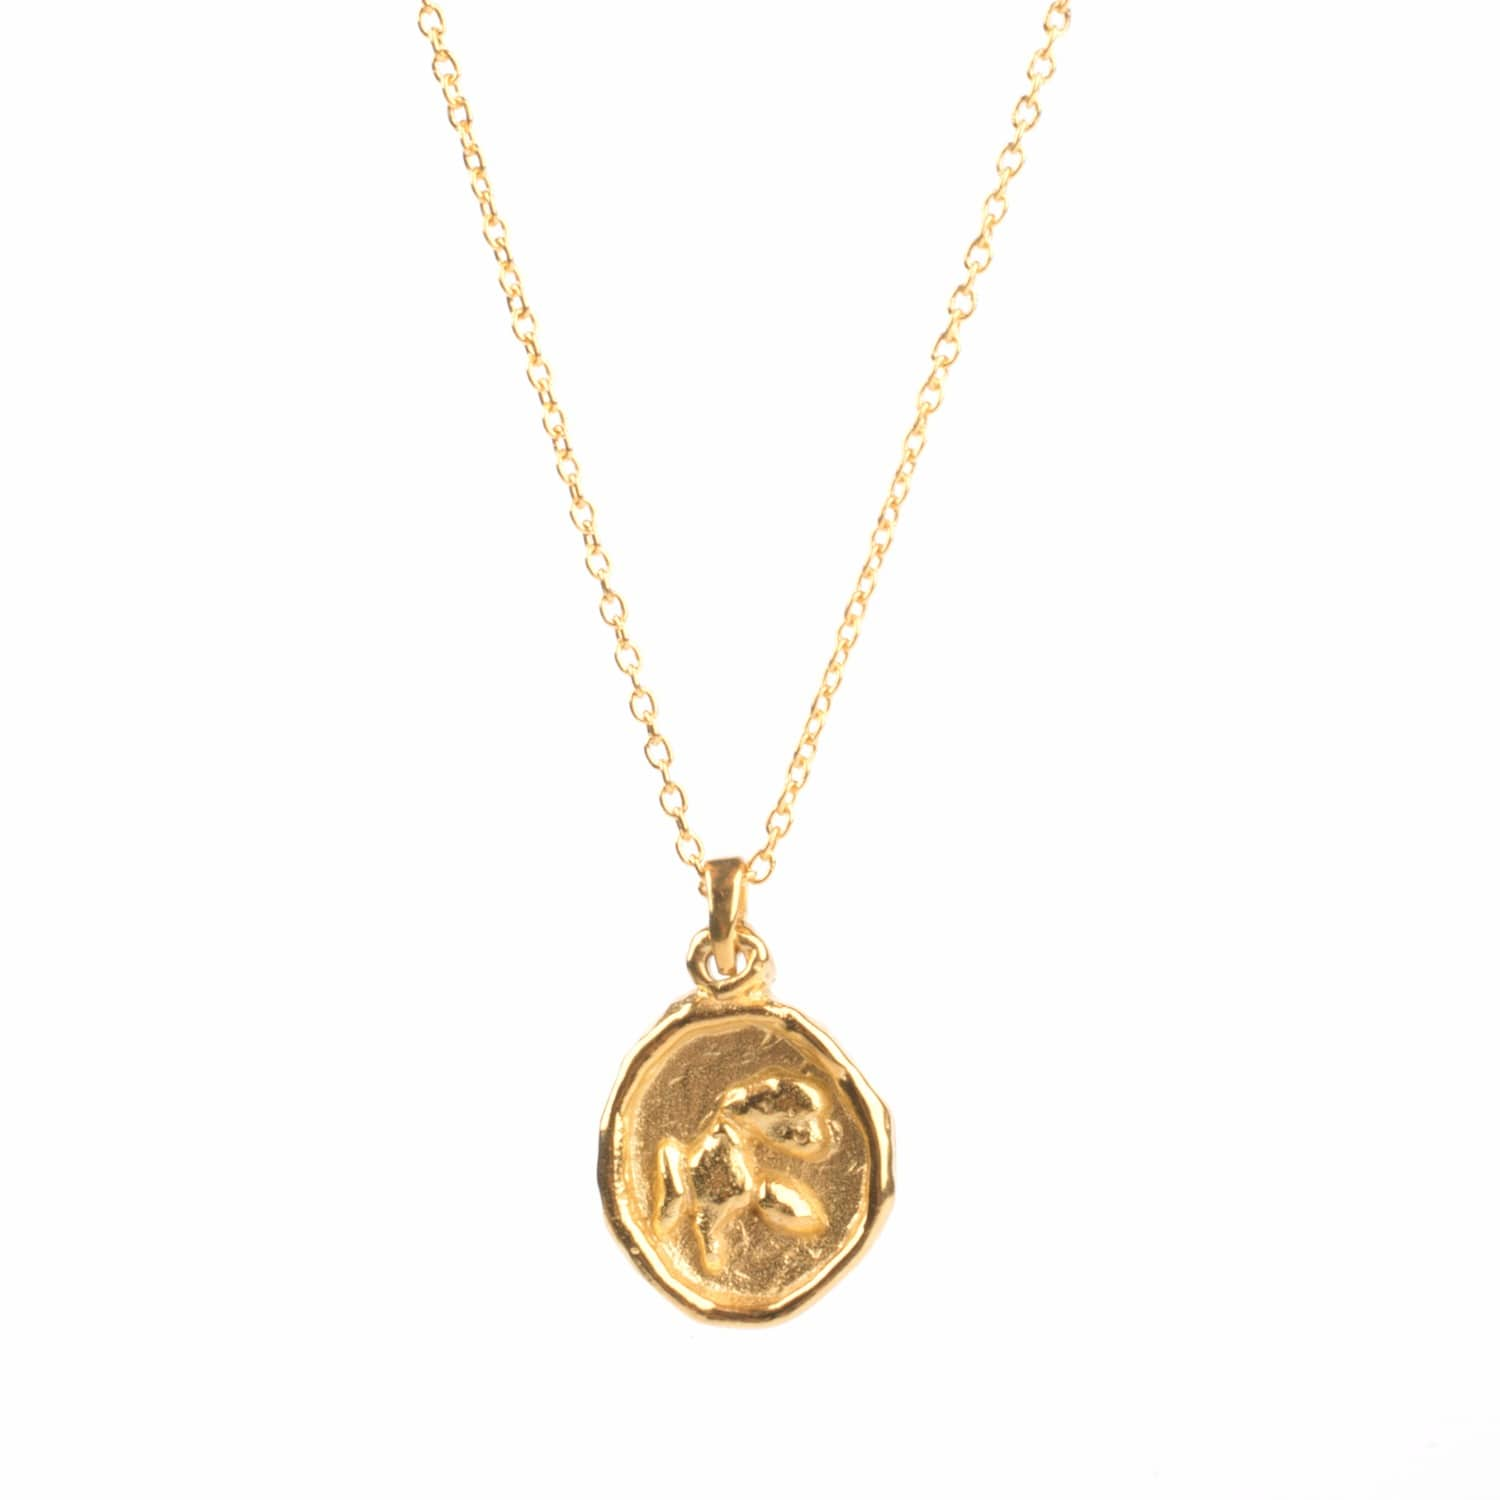 gustav mother necklaces child necklace sold chains yellow l gold view and larger in klimt